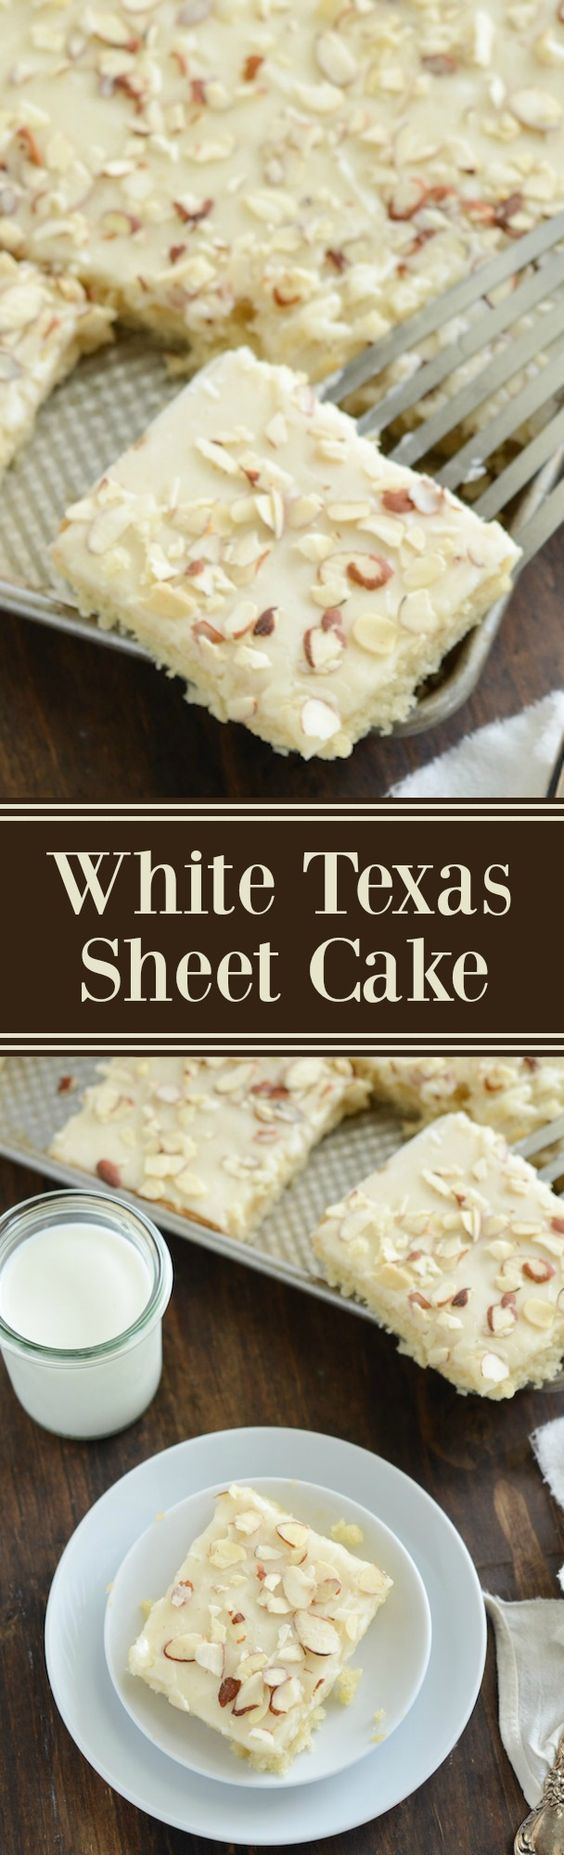 White Texas Almond Sheet Cake Dessert Recipe via The Novice Chef – This perfect buttery cake only takes 30 minutes from start to